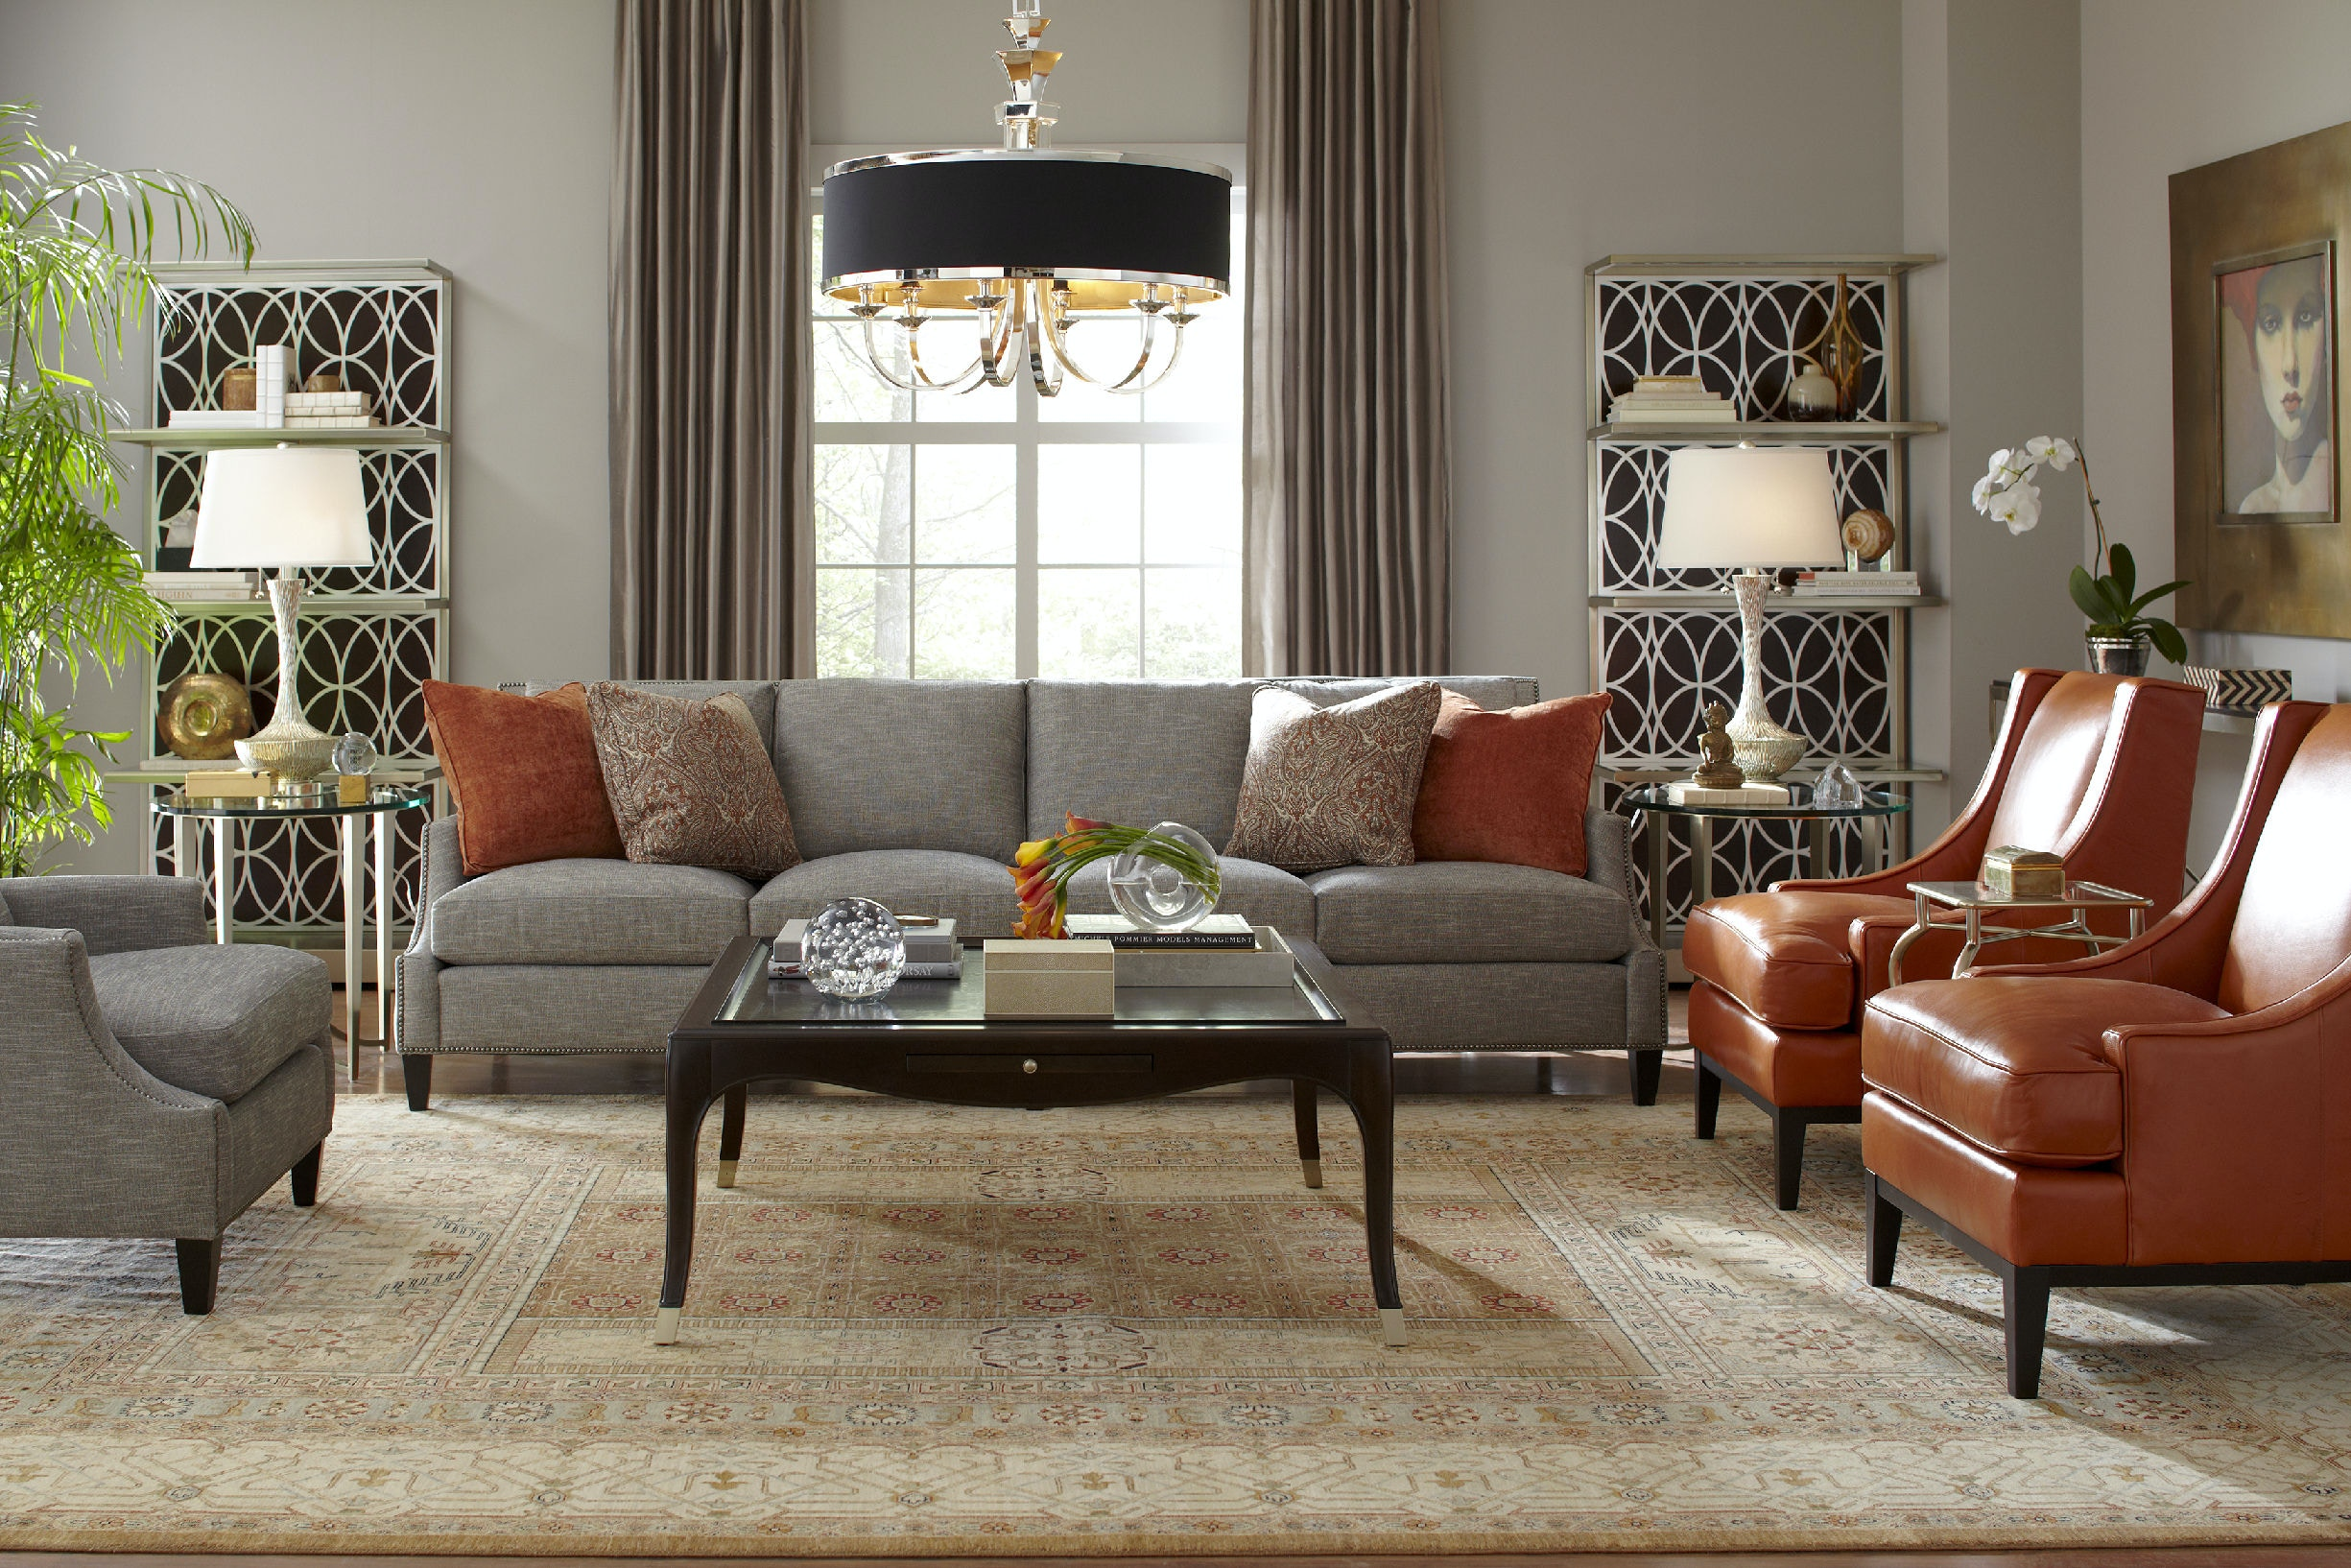 Crawford Sofa ST:437363